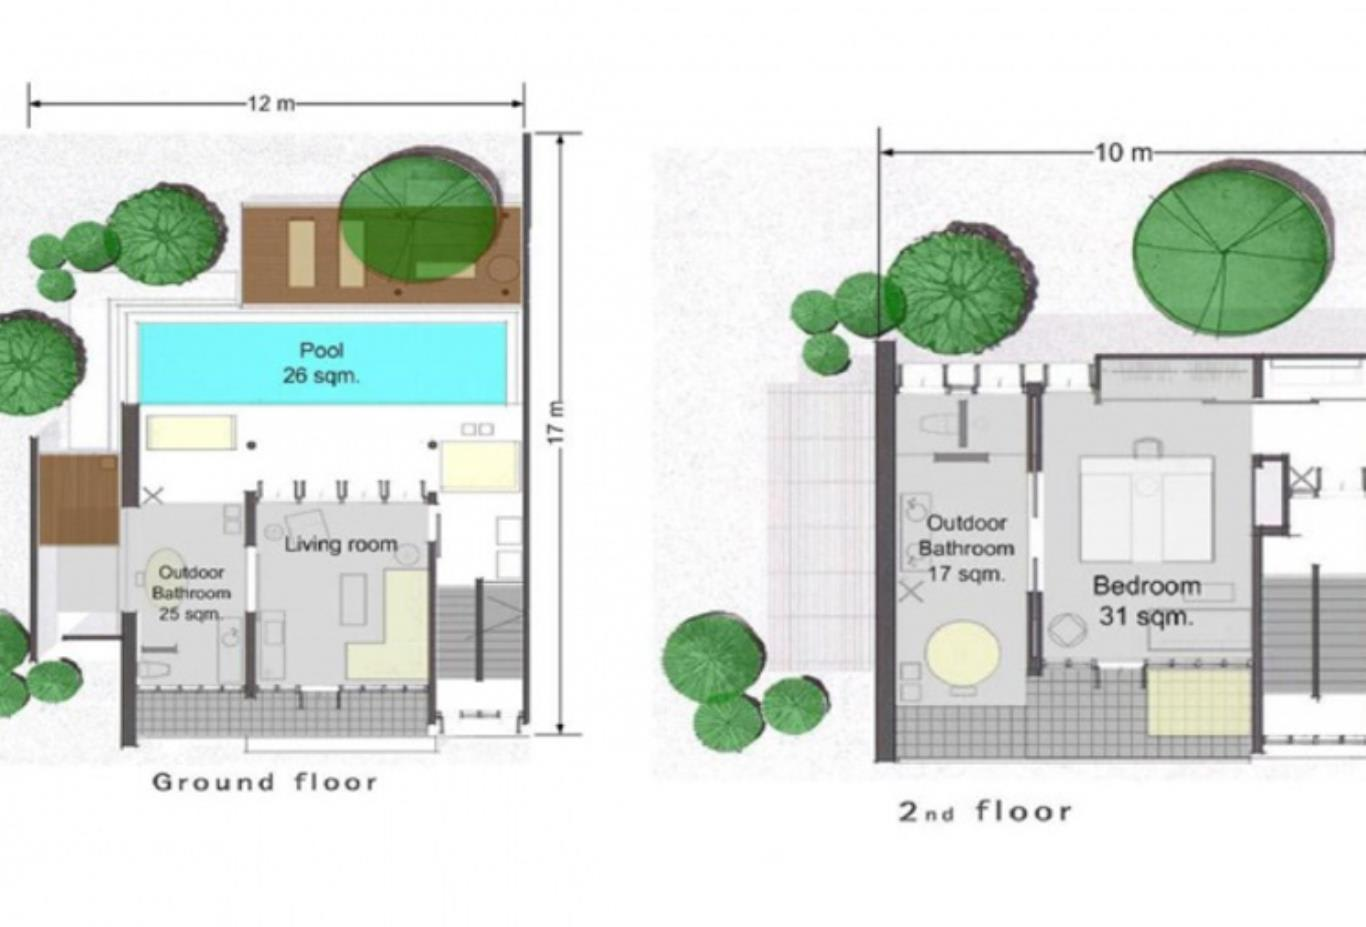 One bedroom duplex pool villa suite floorplan